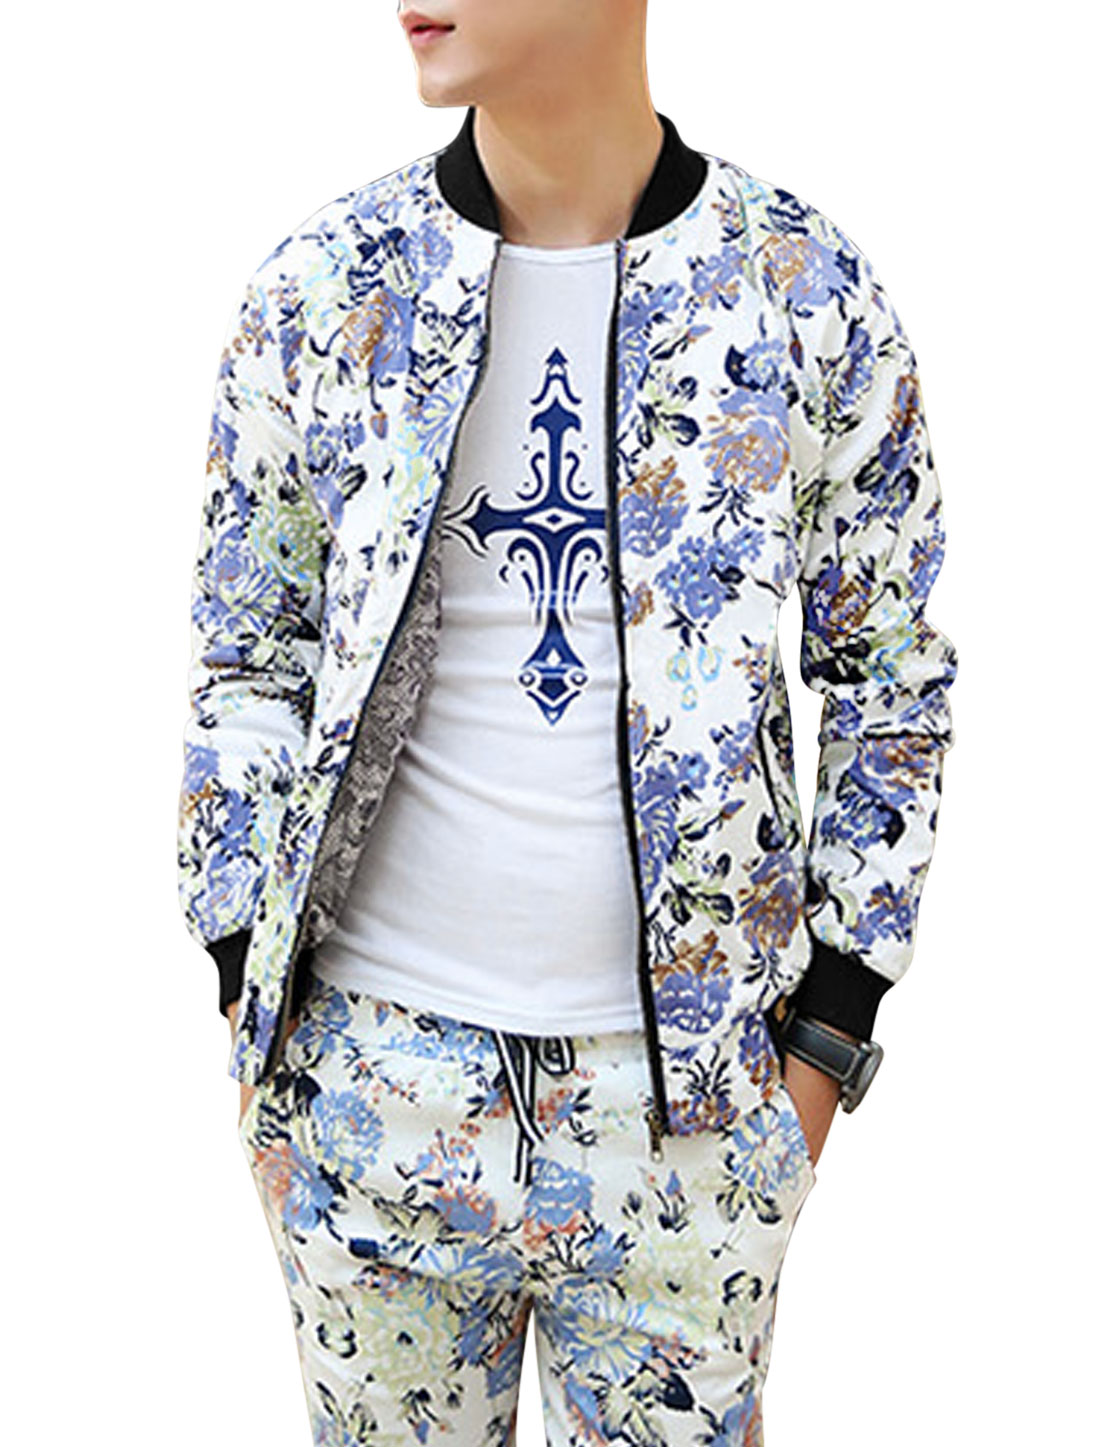 Man Multicolor Stand Collar Long Sleeves zippered Front Casual Jacket M